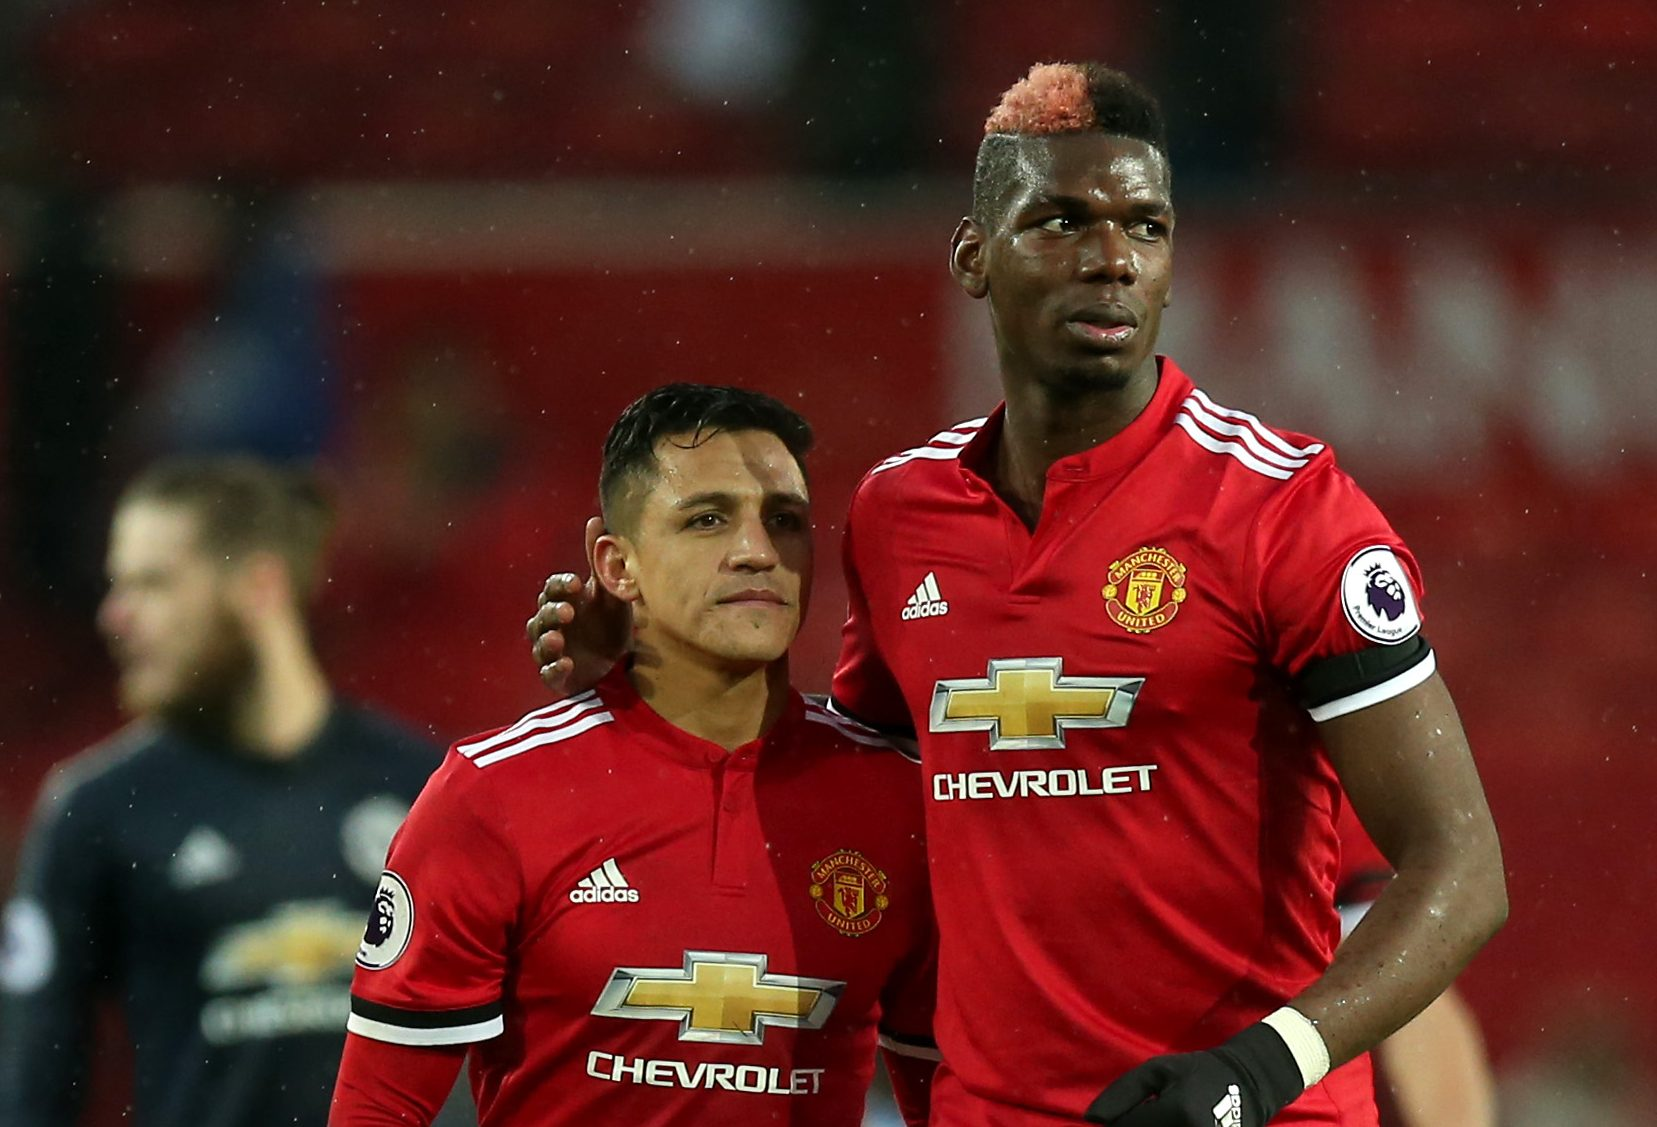 Gary Neville urges Jose Mourinho to drop Paul Pogba and Alexis Sanchez for FA Cup semi-final